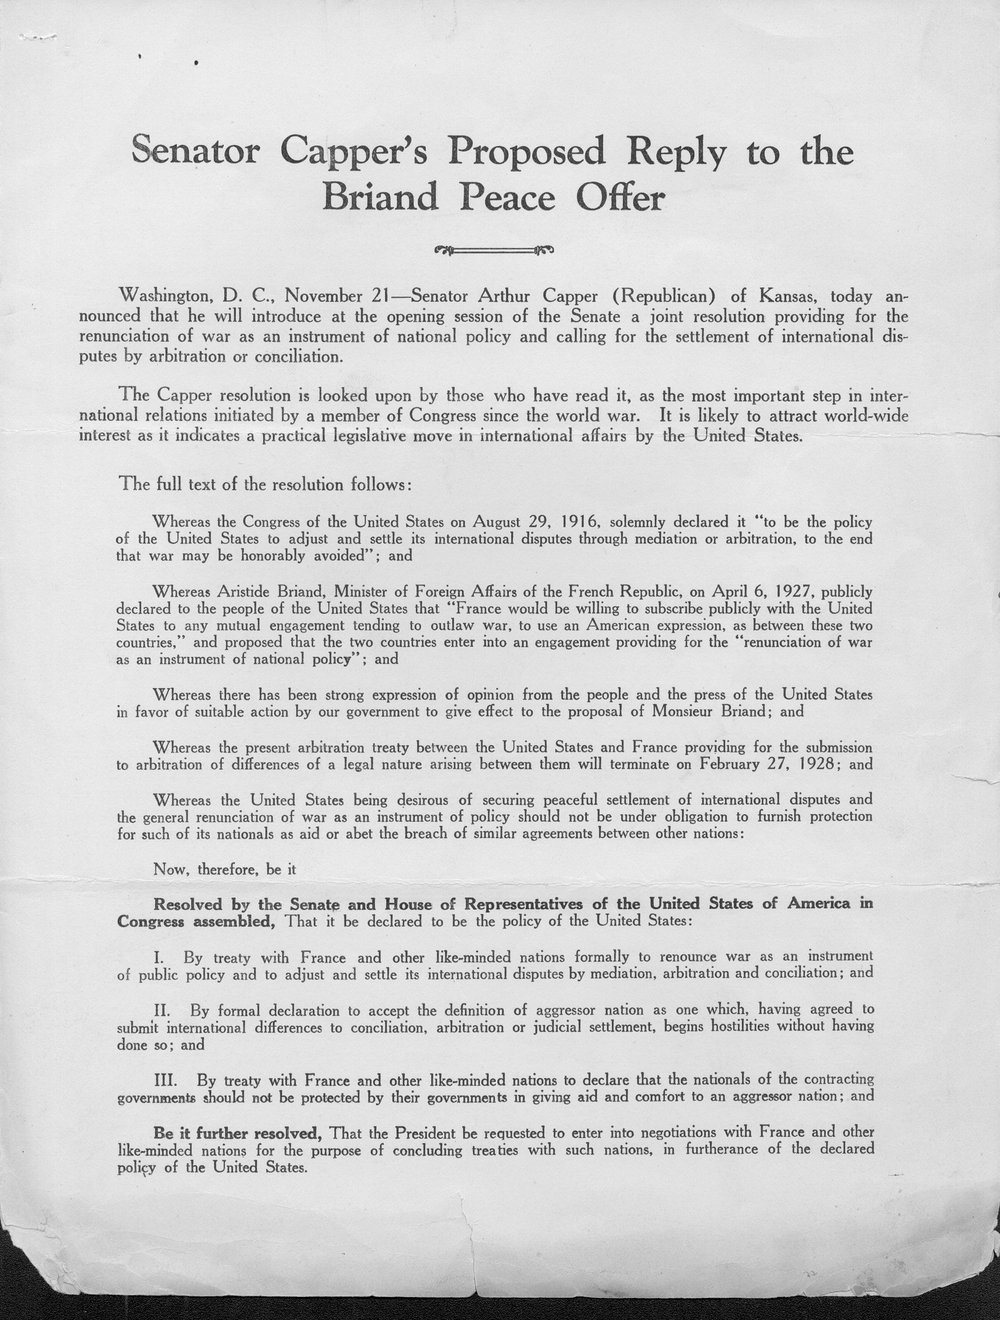 Senator Capper's proposed reply to the Briand Peace Offer - 1